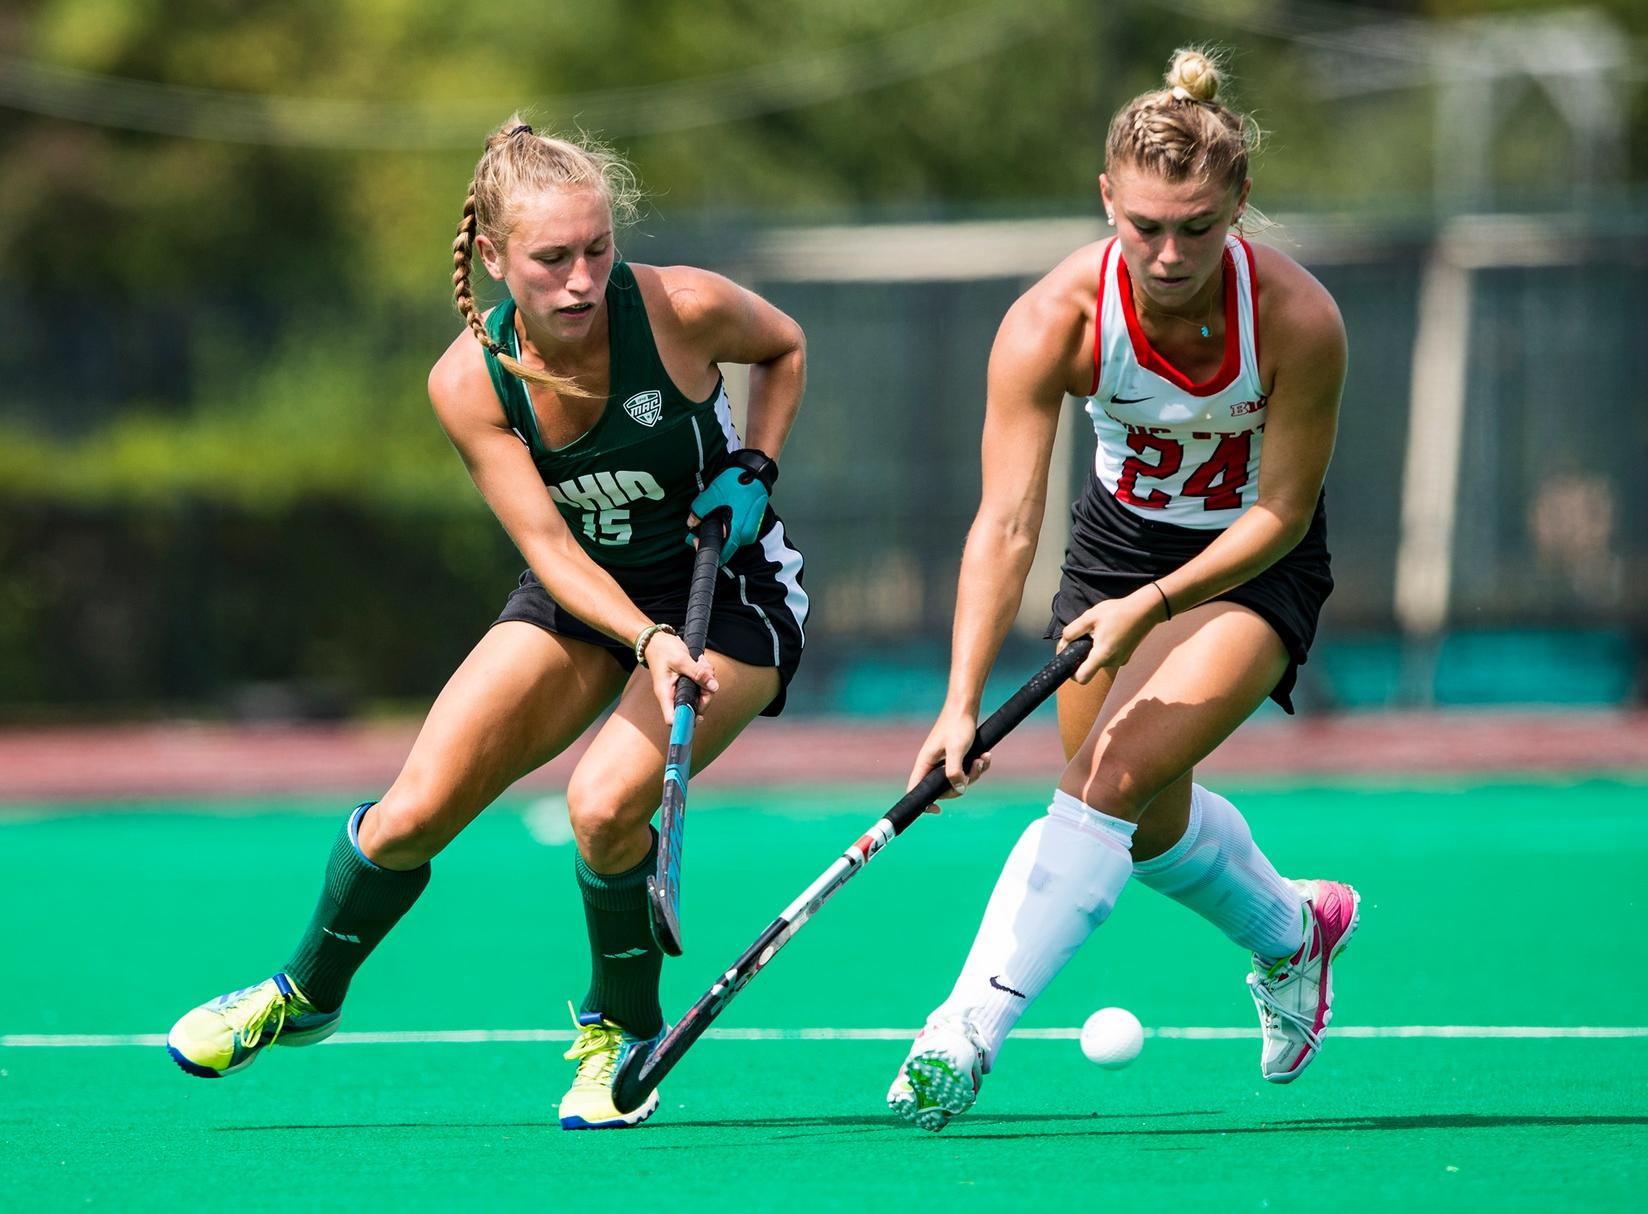 Russell Leads Ohio Field Hockey to 2-0 Victory at CMU